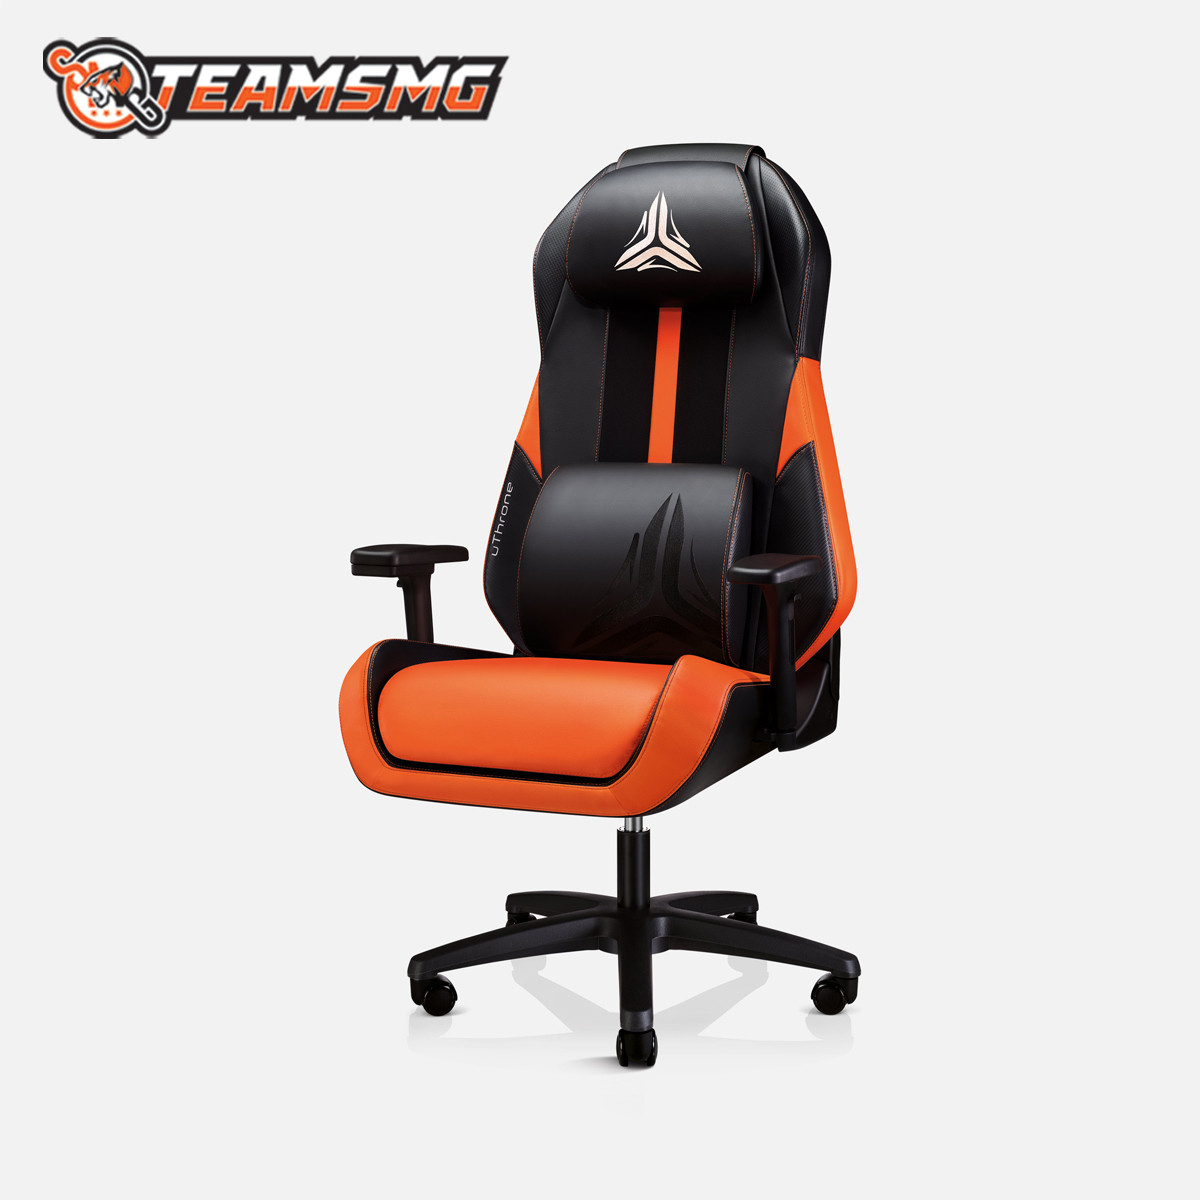 uThrone Gaming Massage Chair Pre-Order